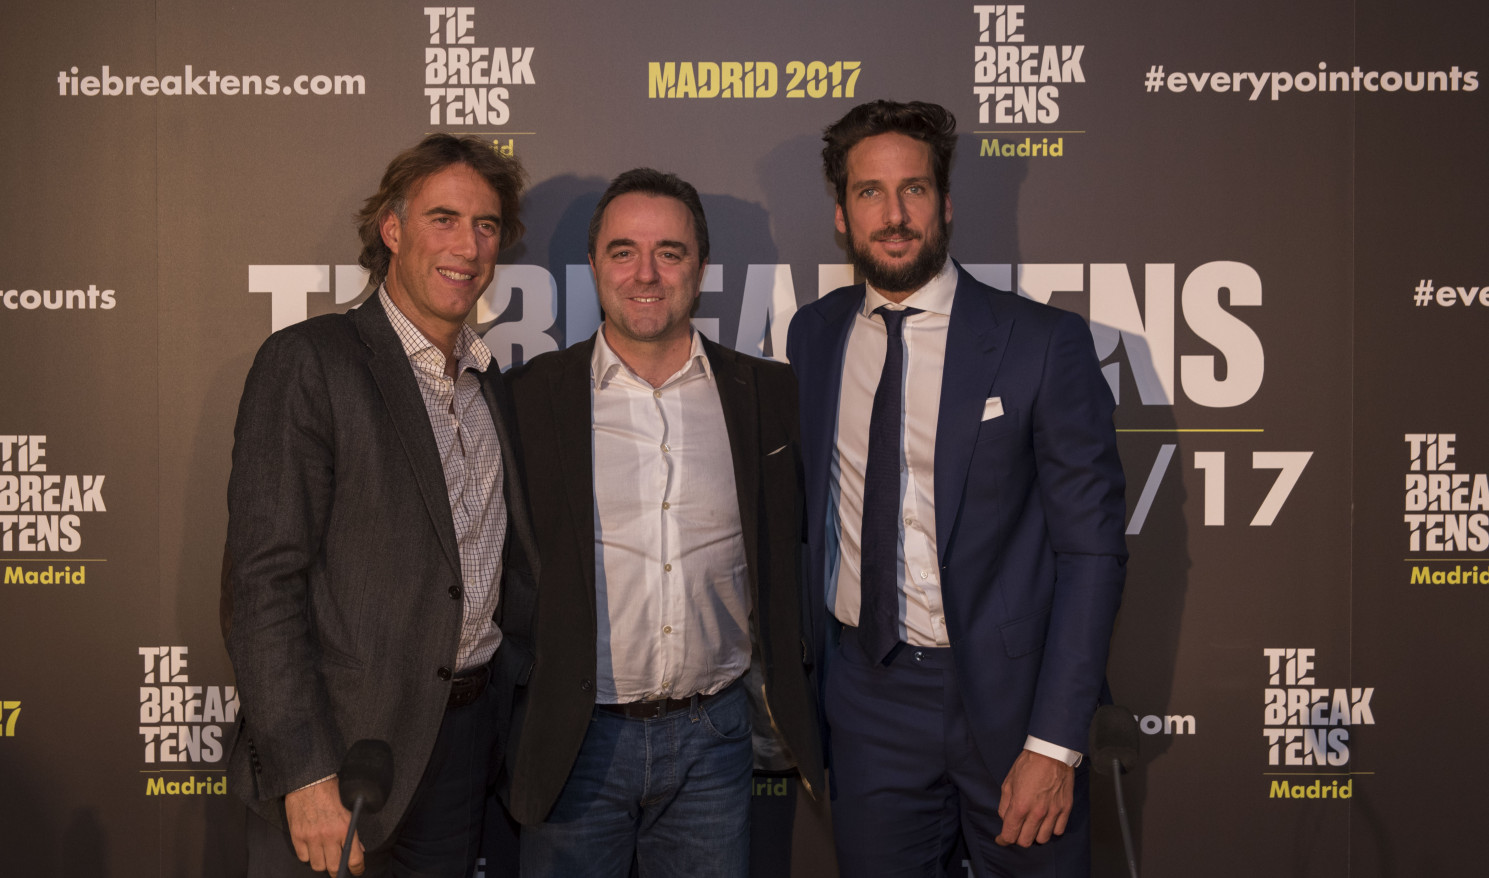 Tie Break Tens Madrid